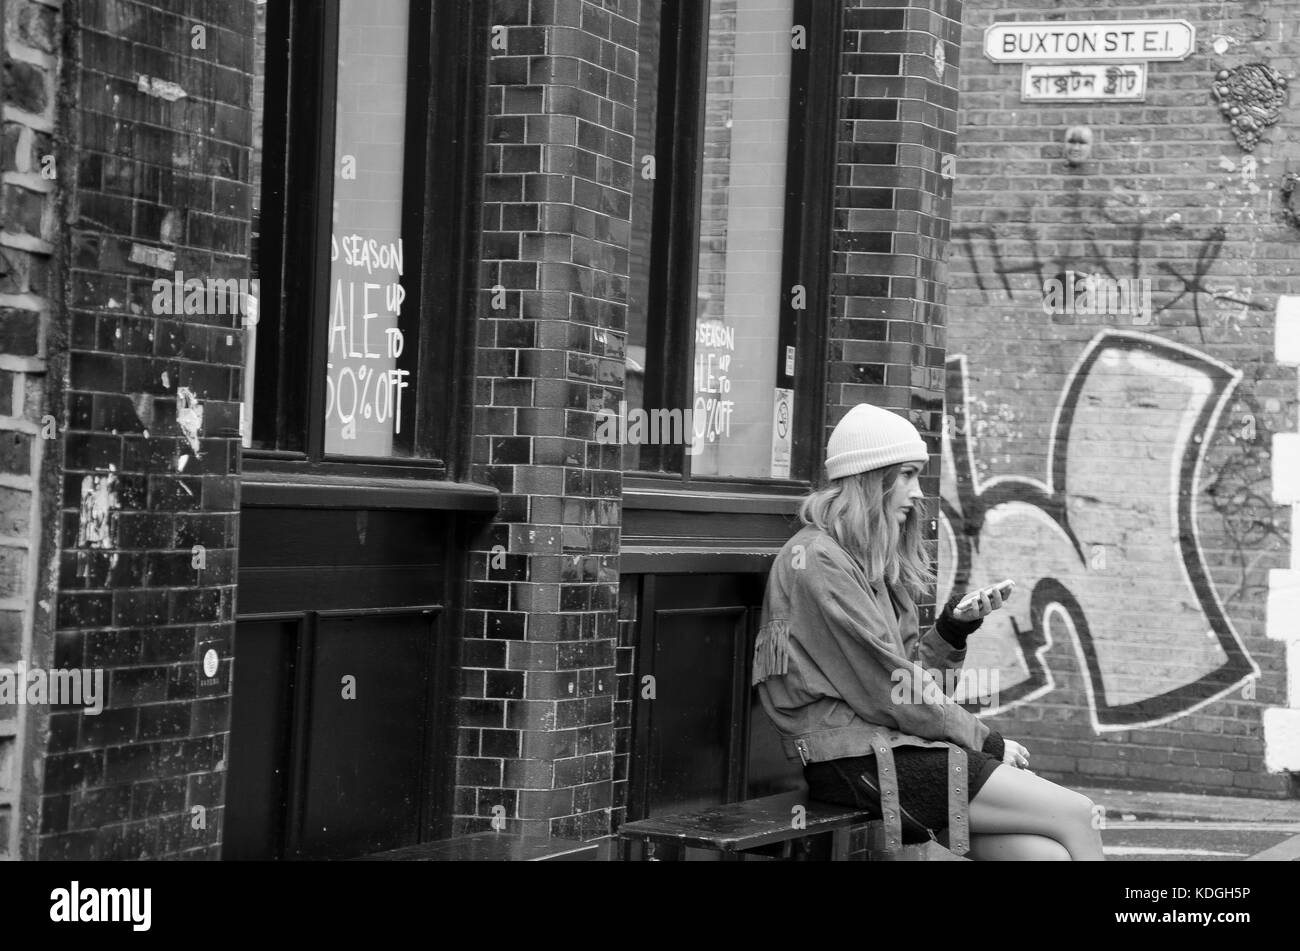 Street Photography around Camden Town and Bethnal Green. - Stock Image